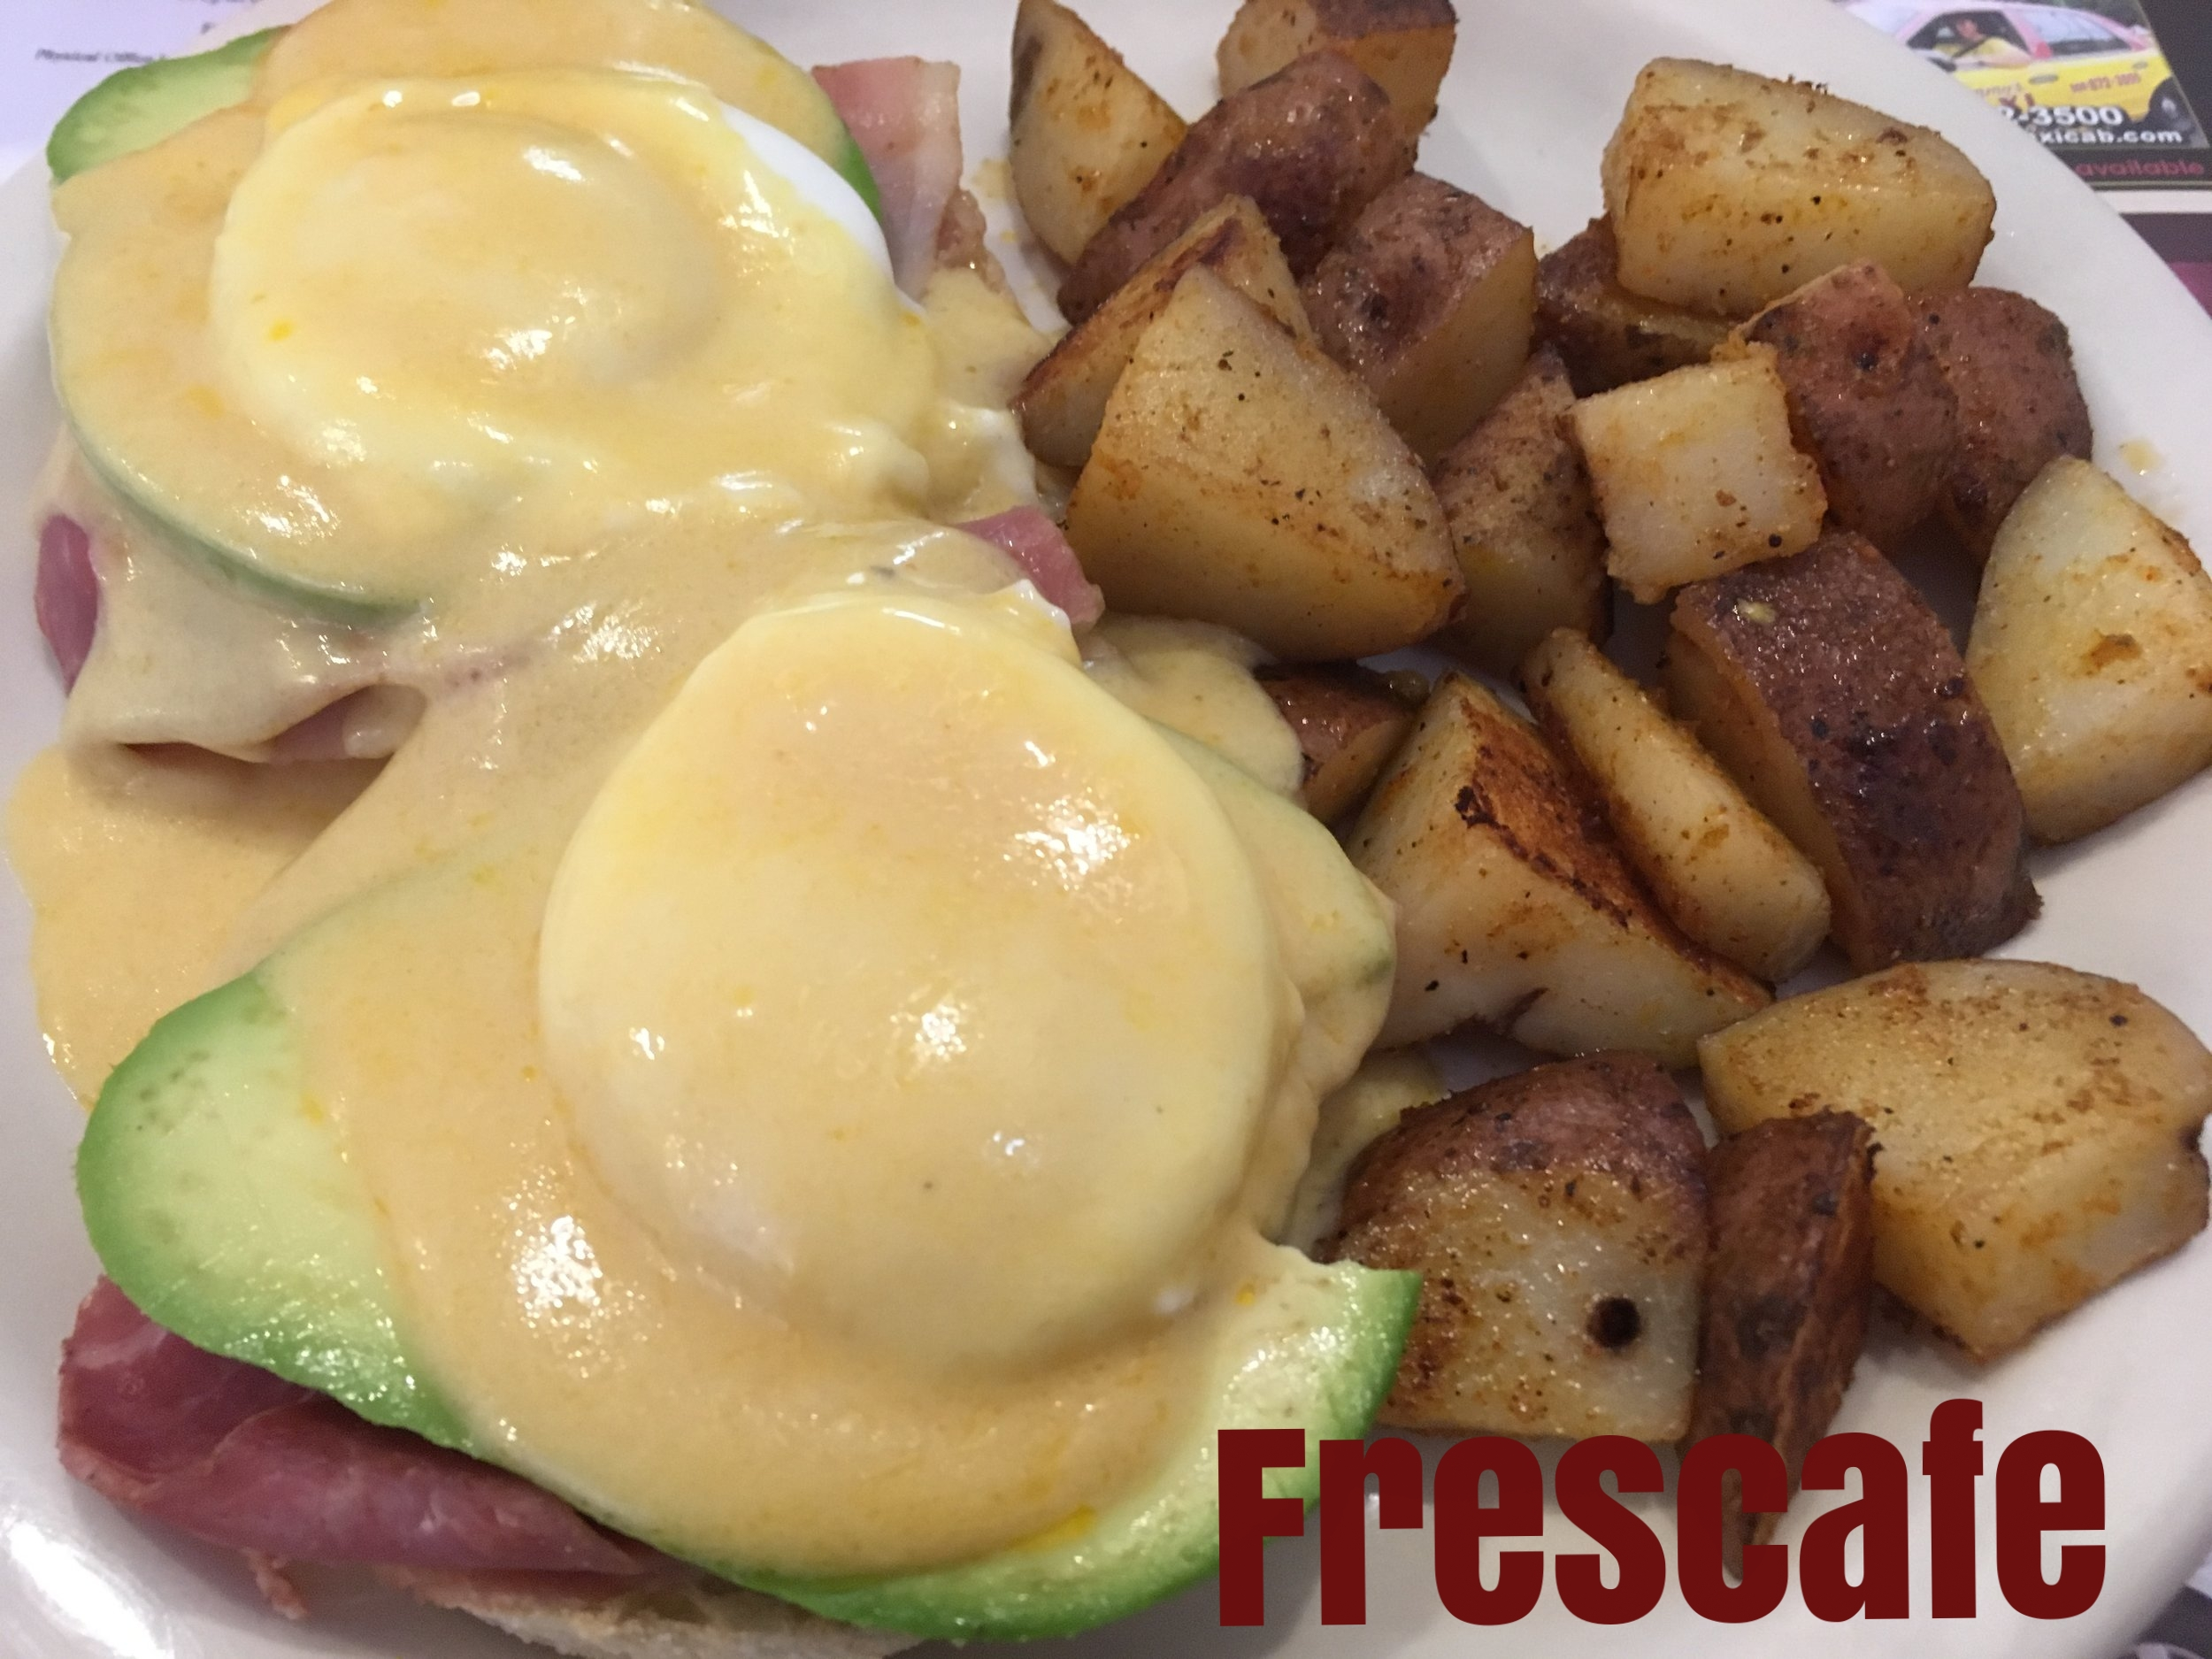 Simple, hearty dining - Frescafe - 82 Concord Street- Chunky Monkey Pancakes- Savory French ToastThe Framingham Beat covers Frescafe